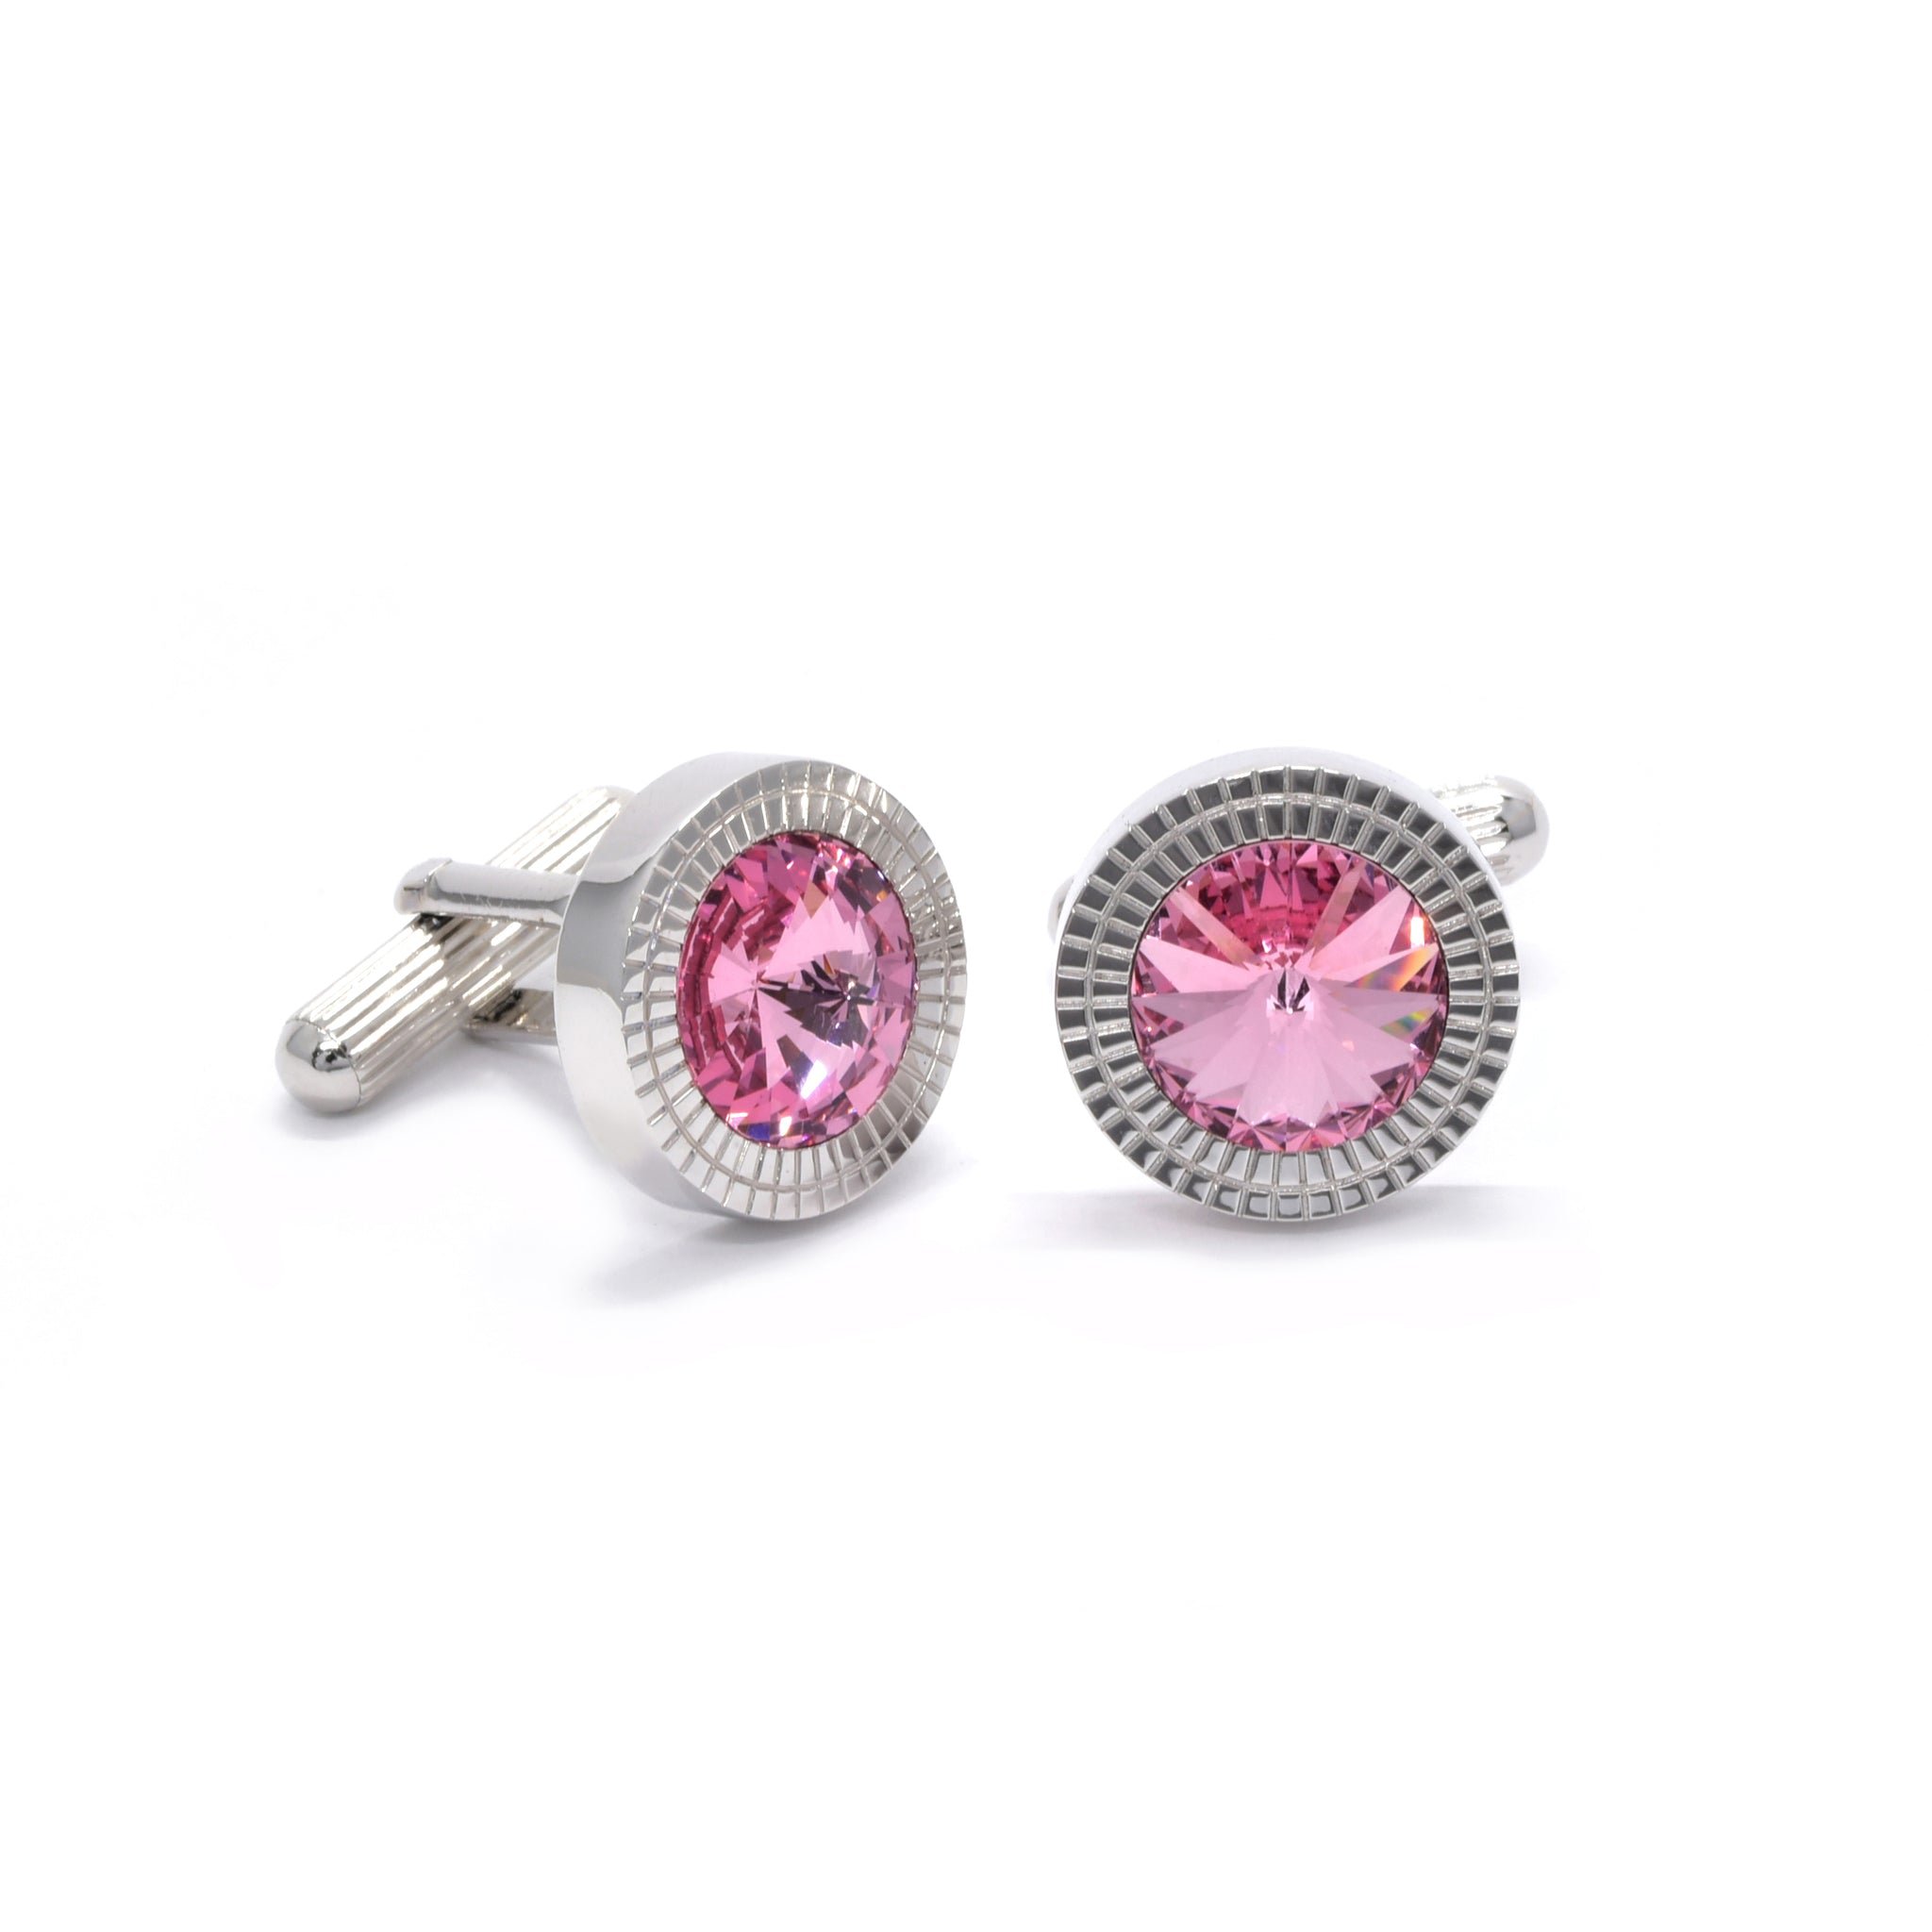 William Cufflinks with Pink Crystal - Giorgio Mandelli® Official Site | GIORGIO MANDELLI Made in Italy